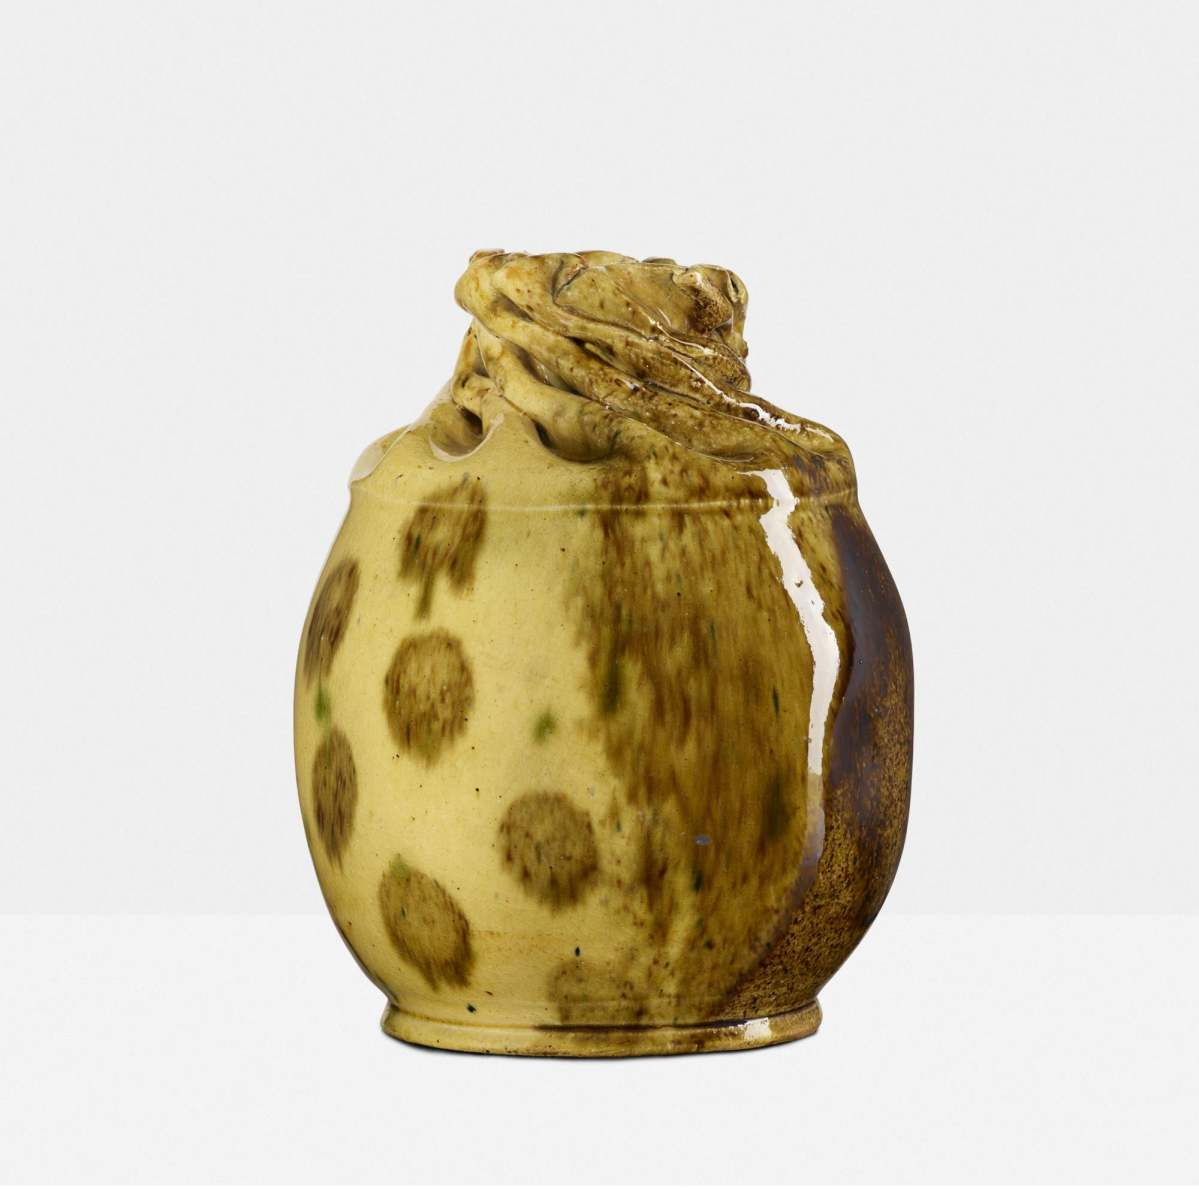 "Large, two-sided vase, 1897-1900, ruffled rim and polka dots on one side and an ochre glaze on the other, 6"" h × 4-1/2"" dia; sold at Rago for $20,000."